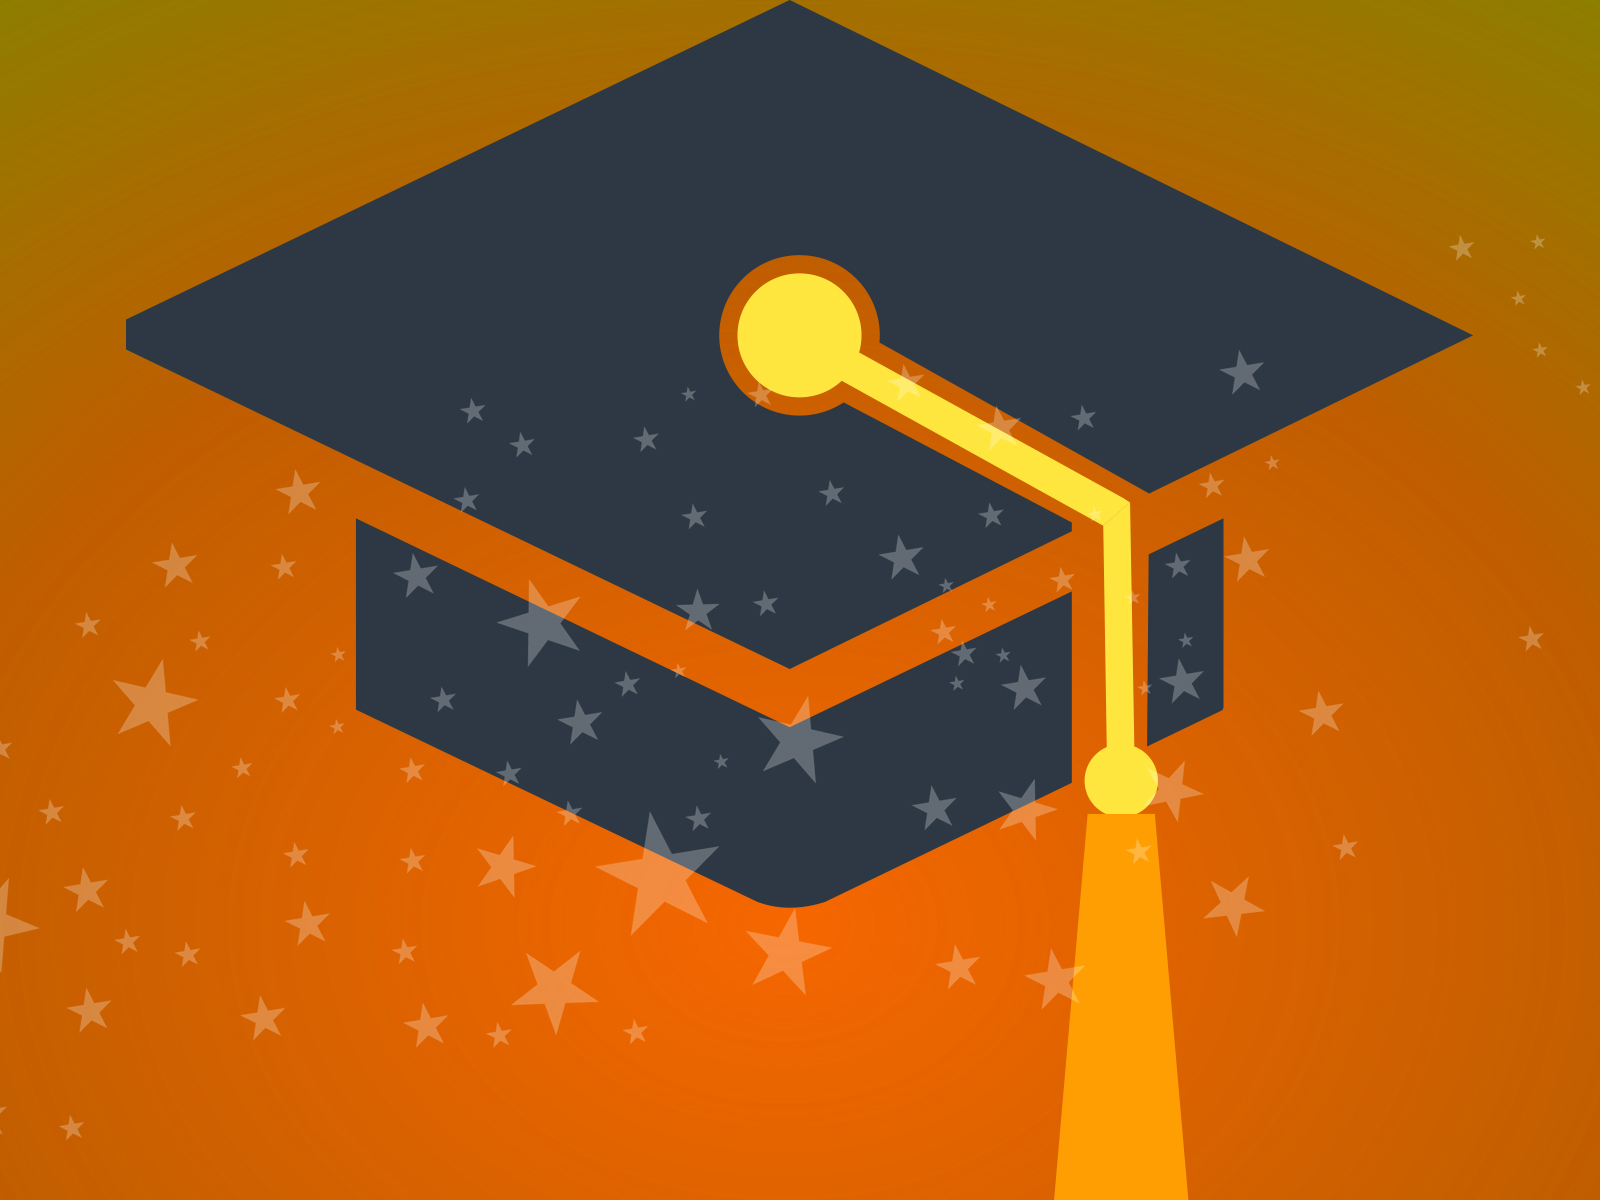 School Graduation PPT Backgrounds